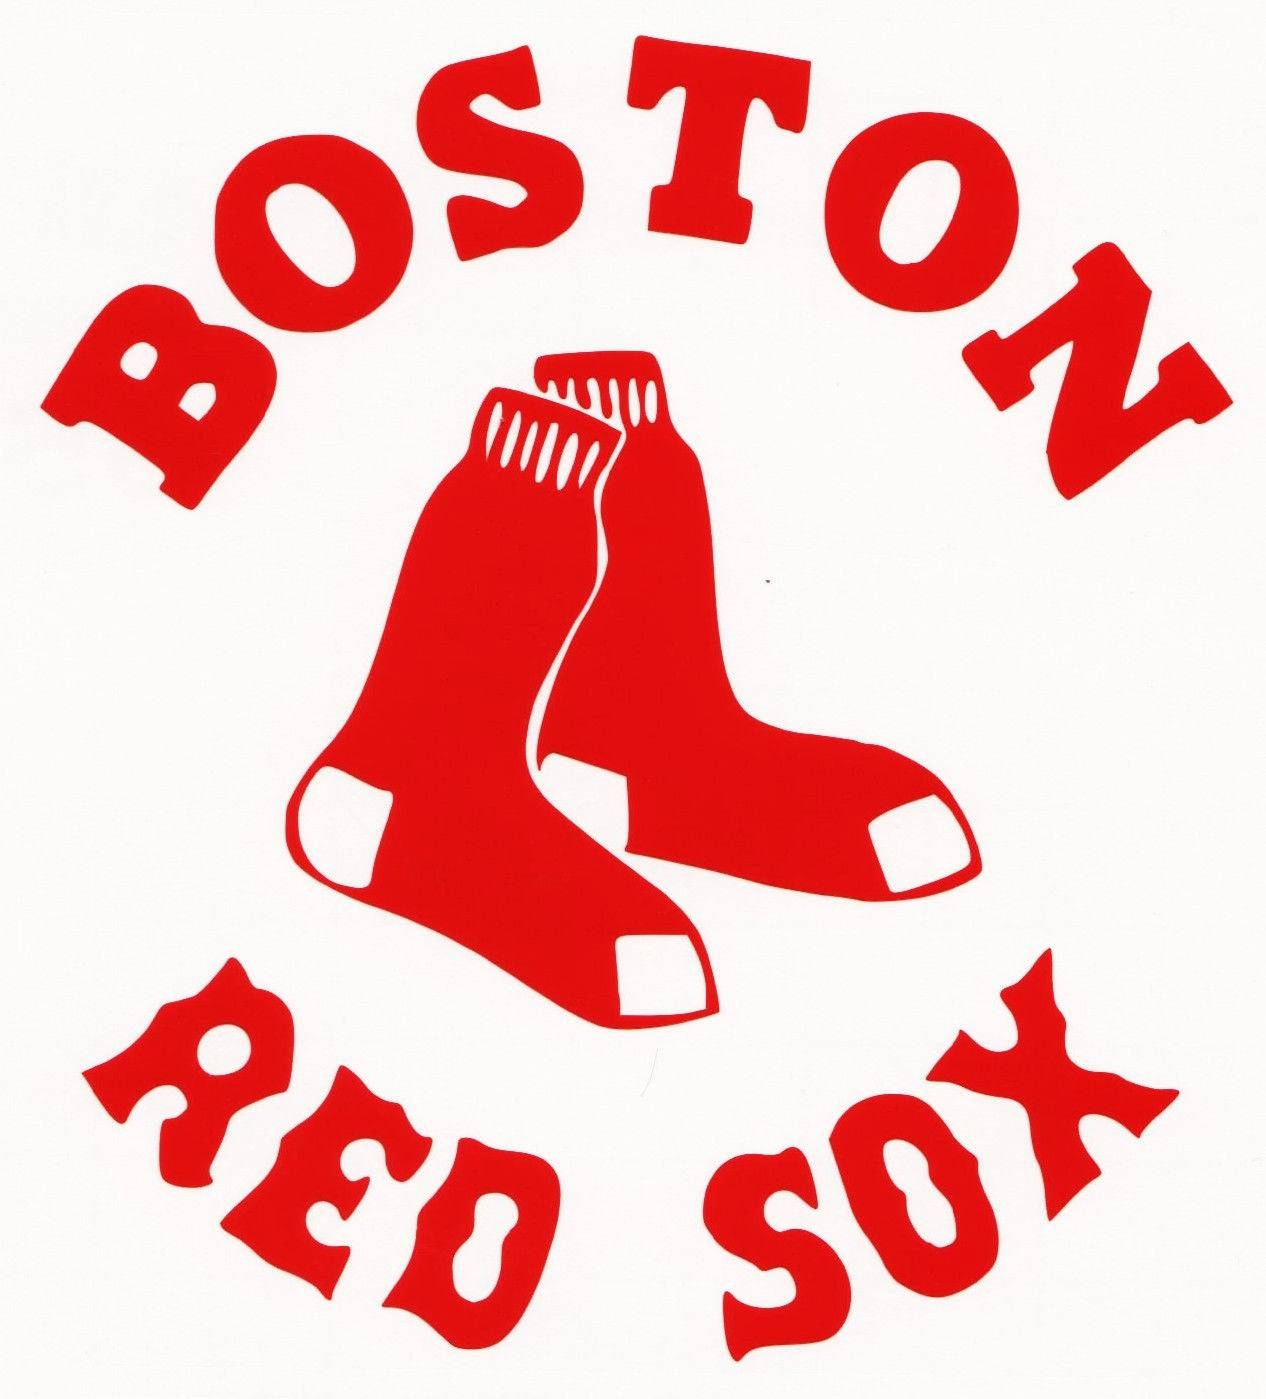 Wall Decal » Boston Red Sox Wall Decals – Thousands Pictures Of With Regard To Most Recent Red Sox Wall Decals (View 22 of 30)